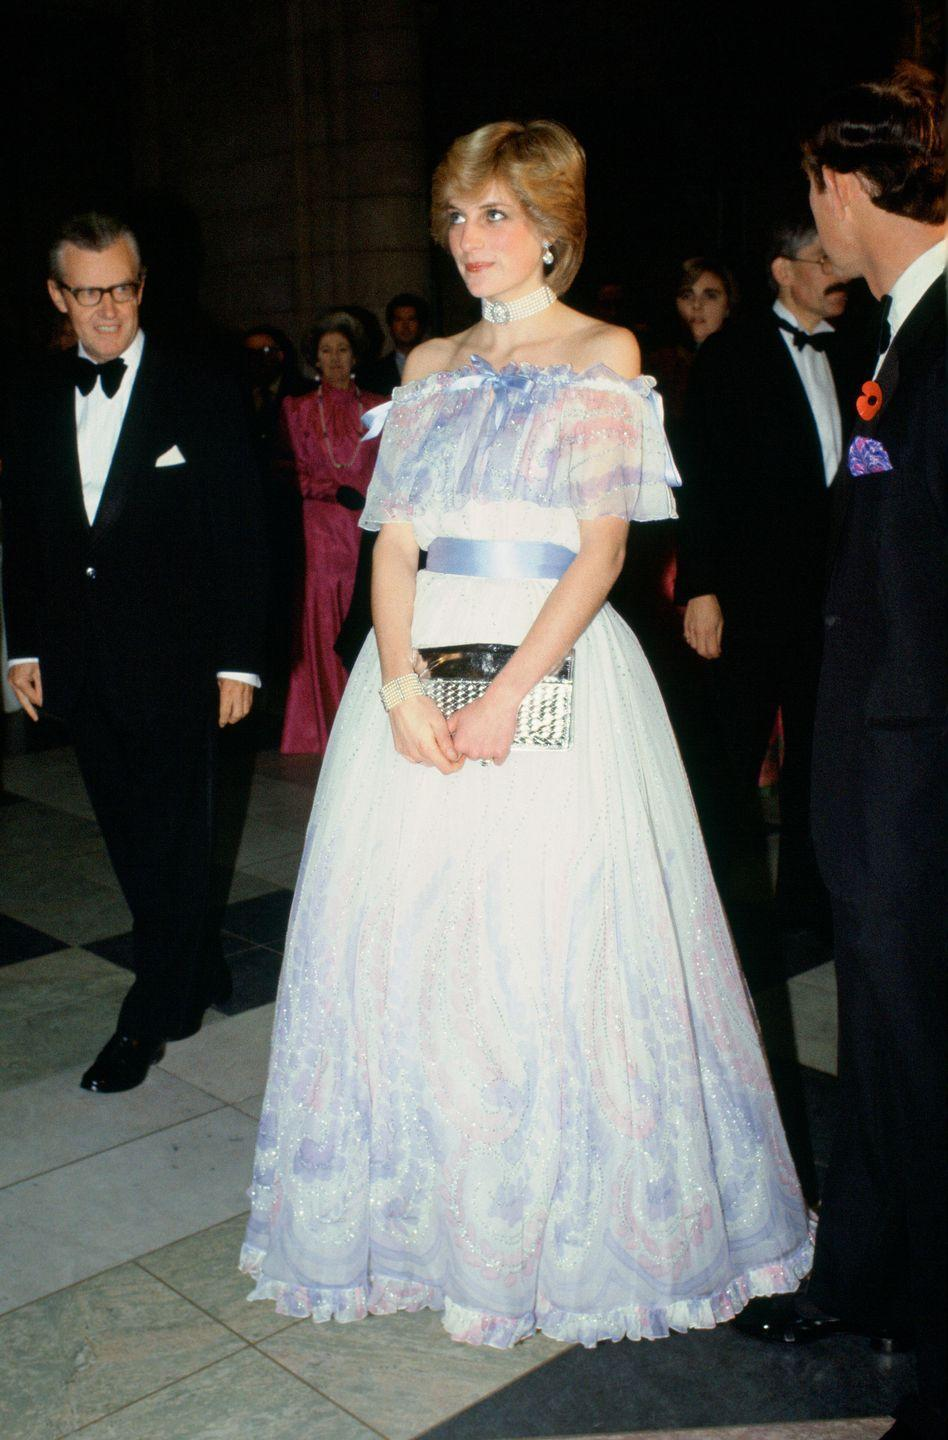 <p>The dreamy Bellville Sassoon dress Princess Diana wore to the theater in 1981 is reminiscent of Aurora's second dress, thanks to the off-the-shoulder design and pale periwinkle color. </p>